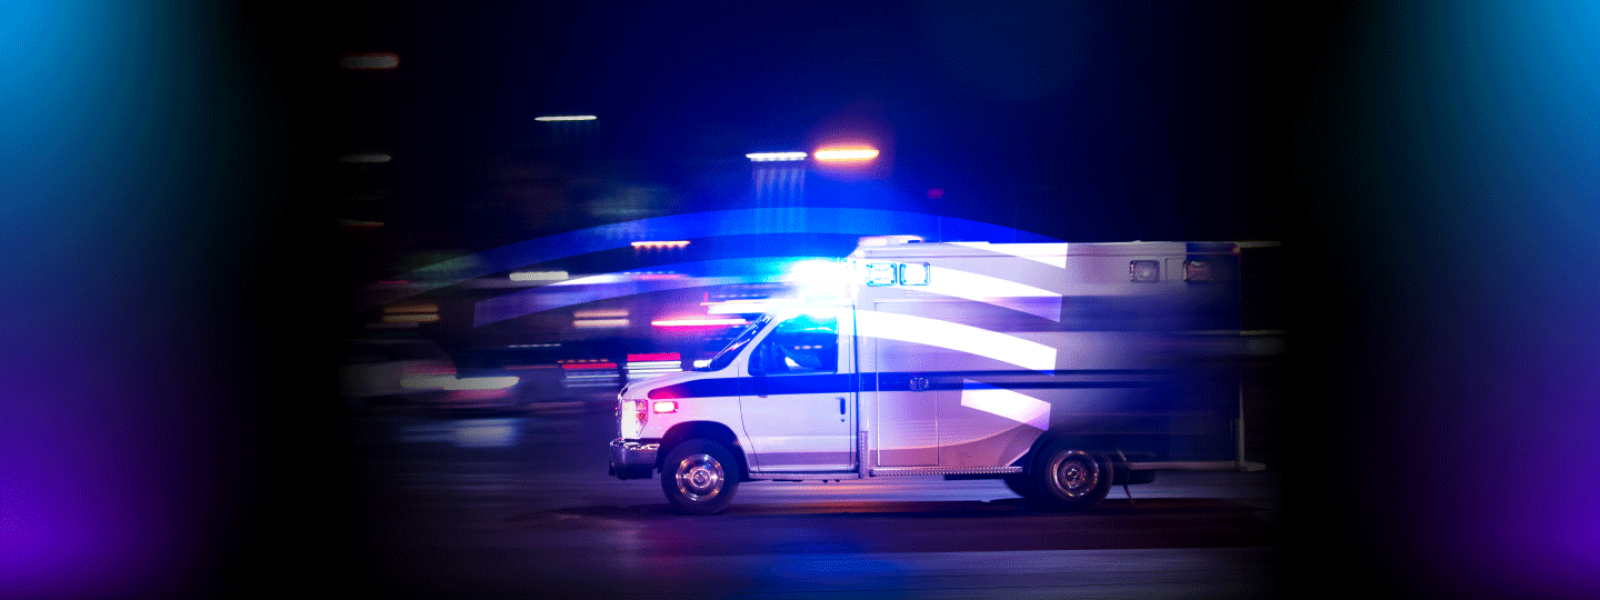 Moving ambulance with flashing lights